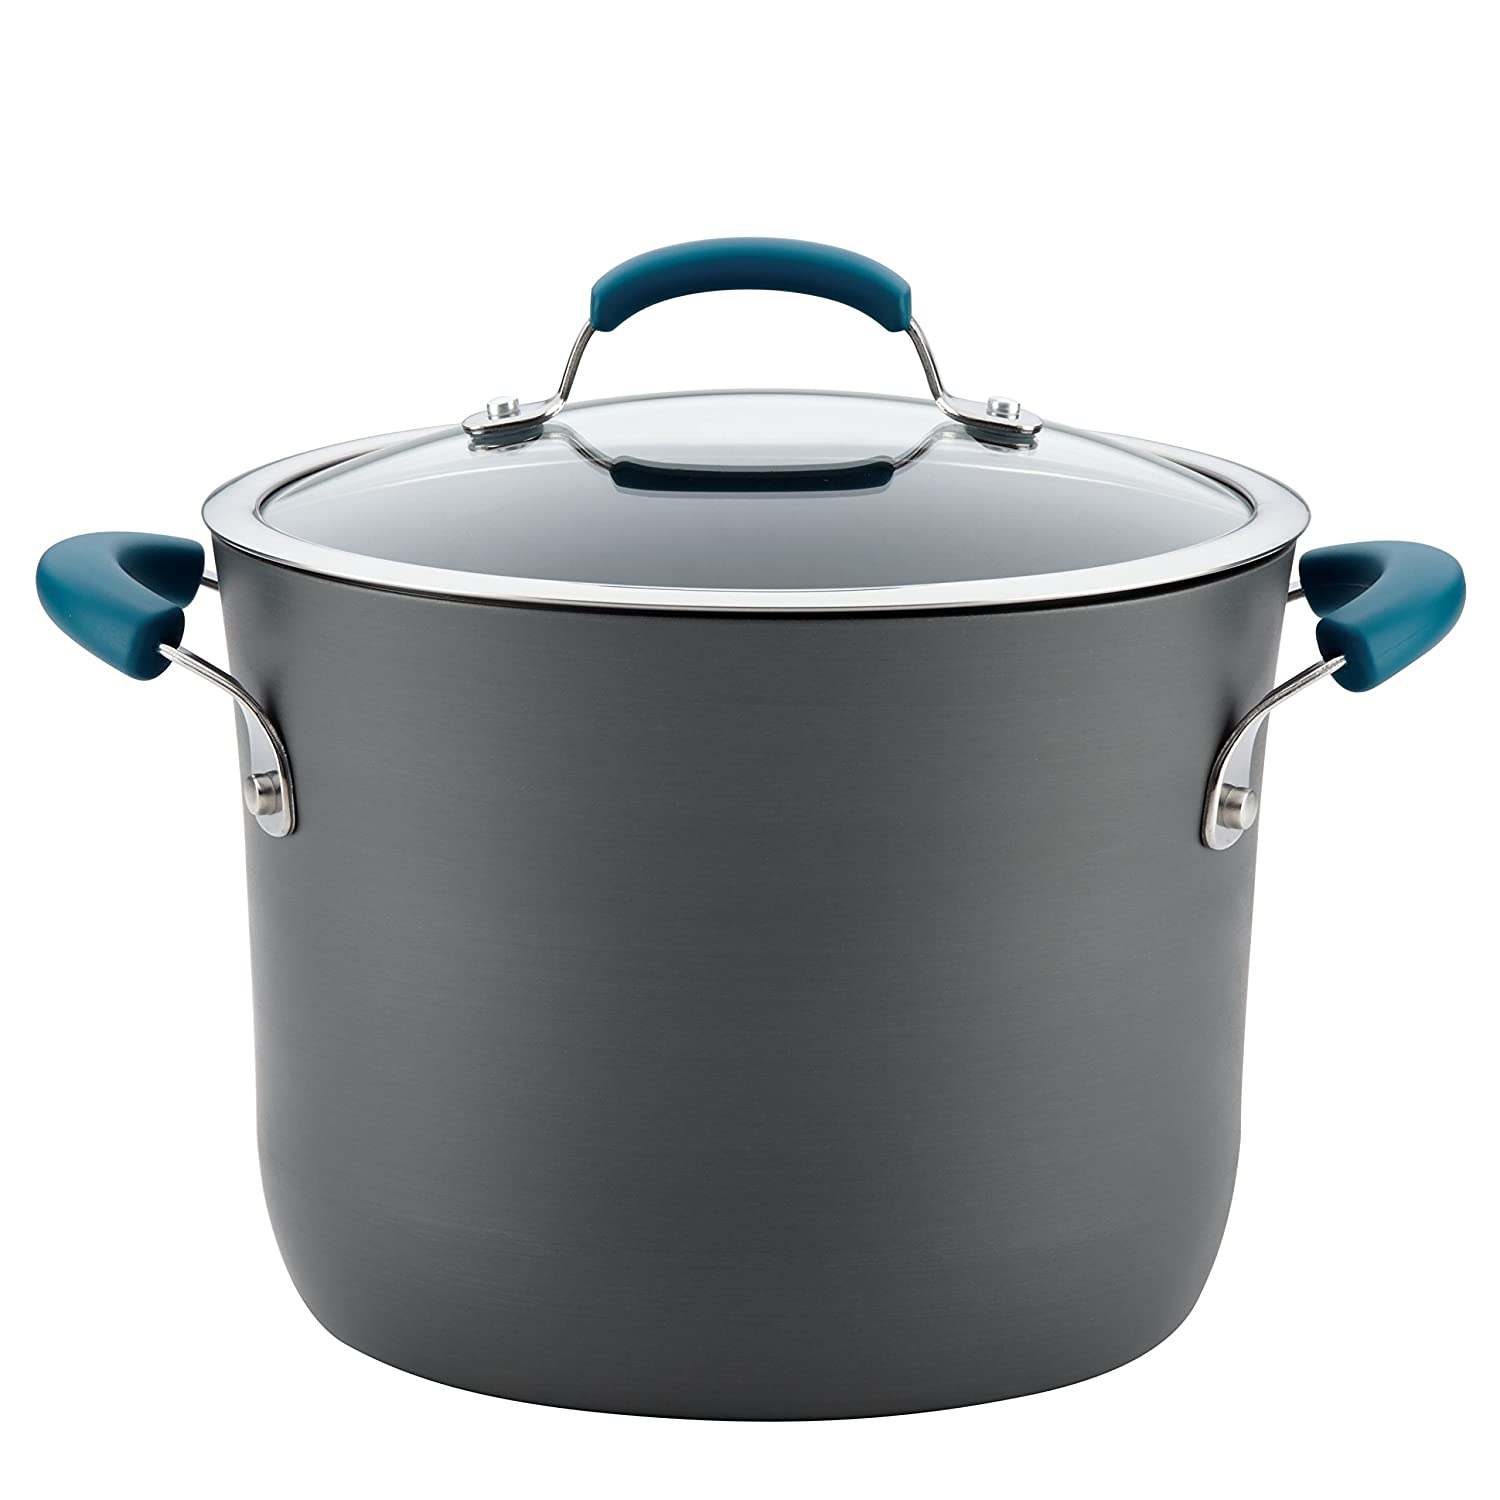 Rachael Ray Hard-Anodized Aluminum Nonstick Covered Stockpot, 8-Quart, Gray with Marine Blue Handles